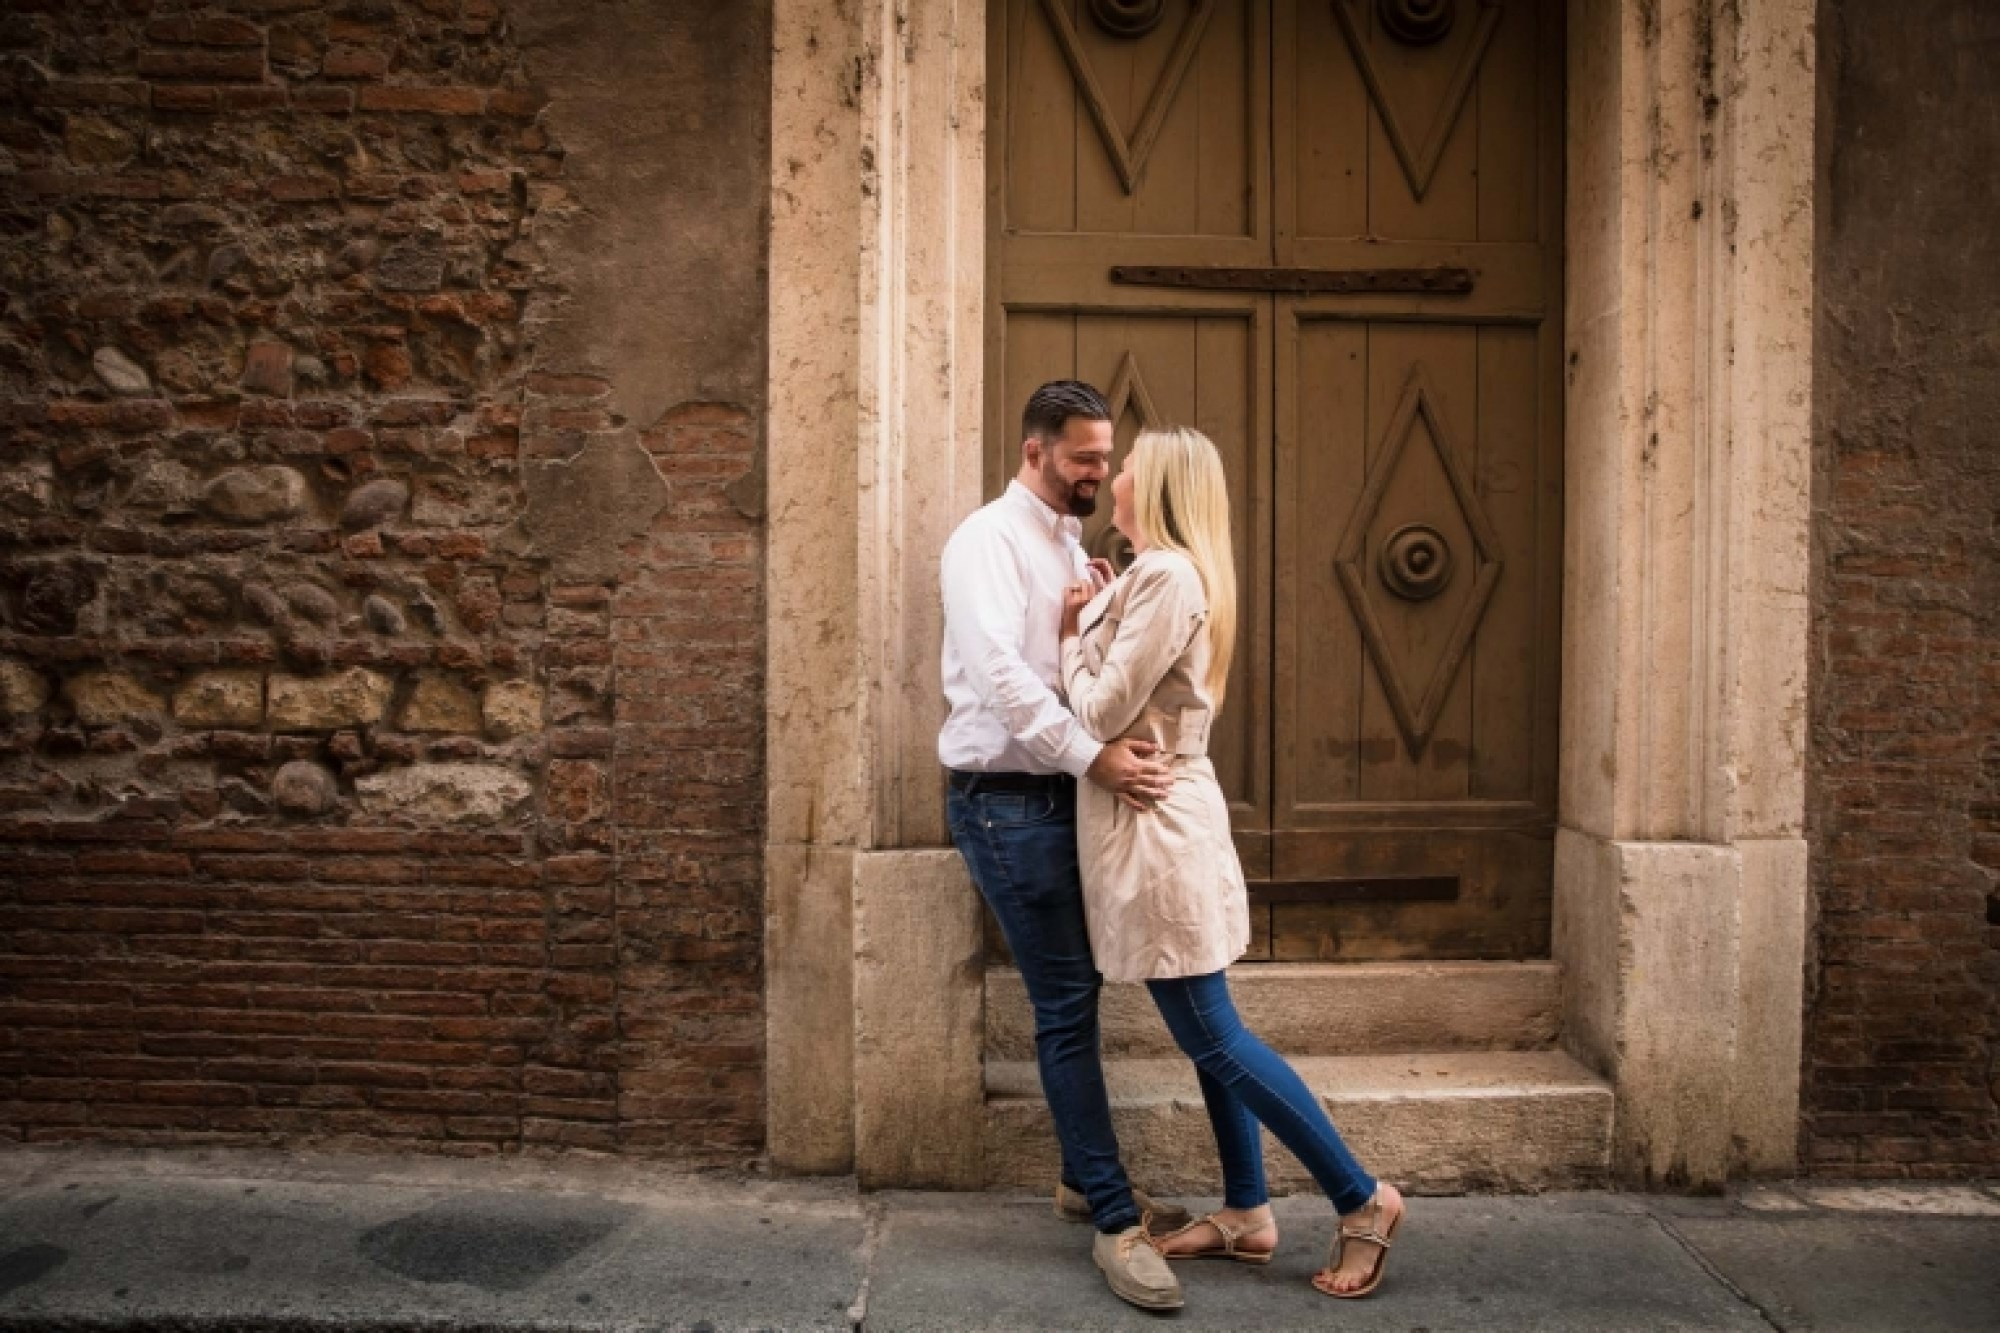 A romantic couple hug one another in Verona, Italy